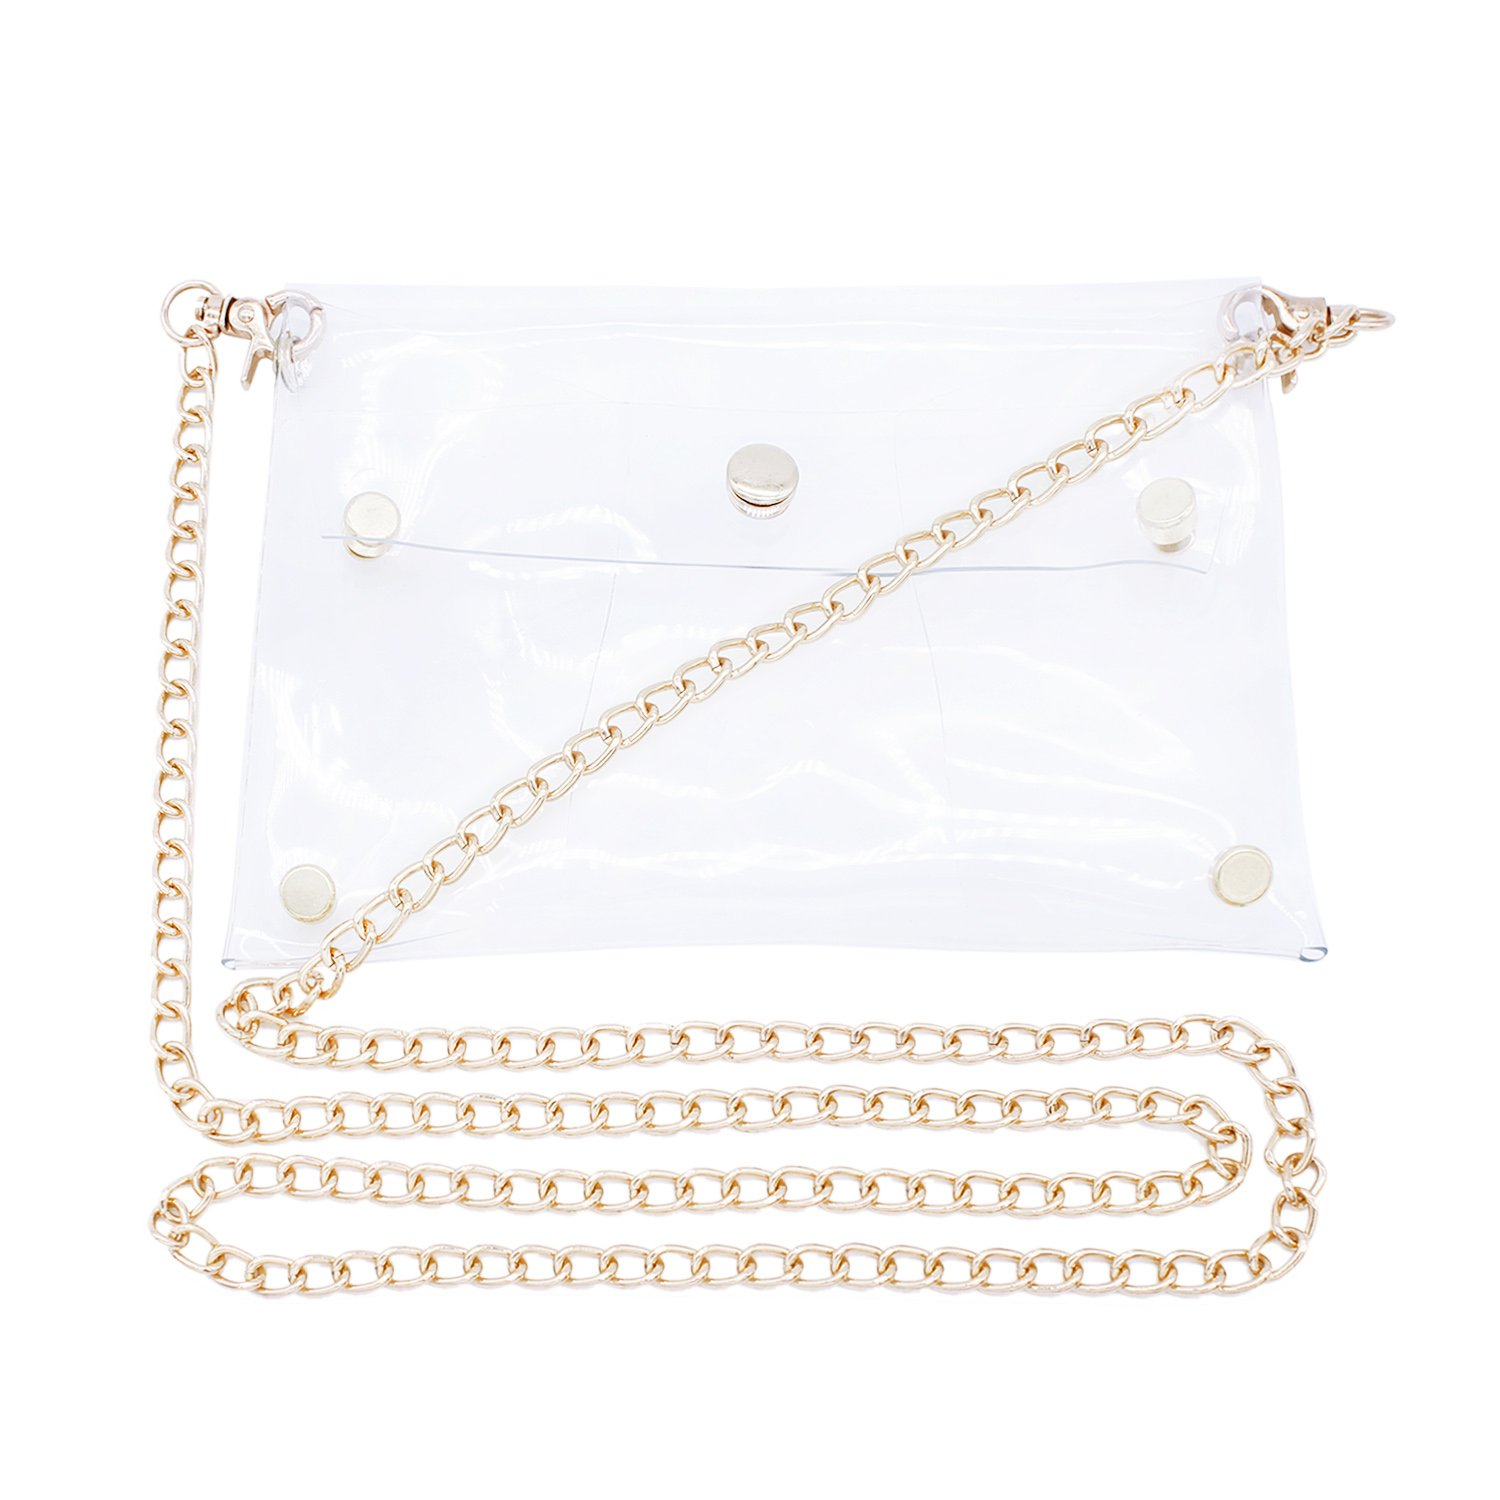 Transparent Shoulder Bag PVC Messenger Clear Cross Body Bags with Gold Chain …